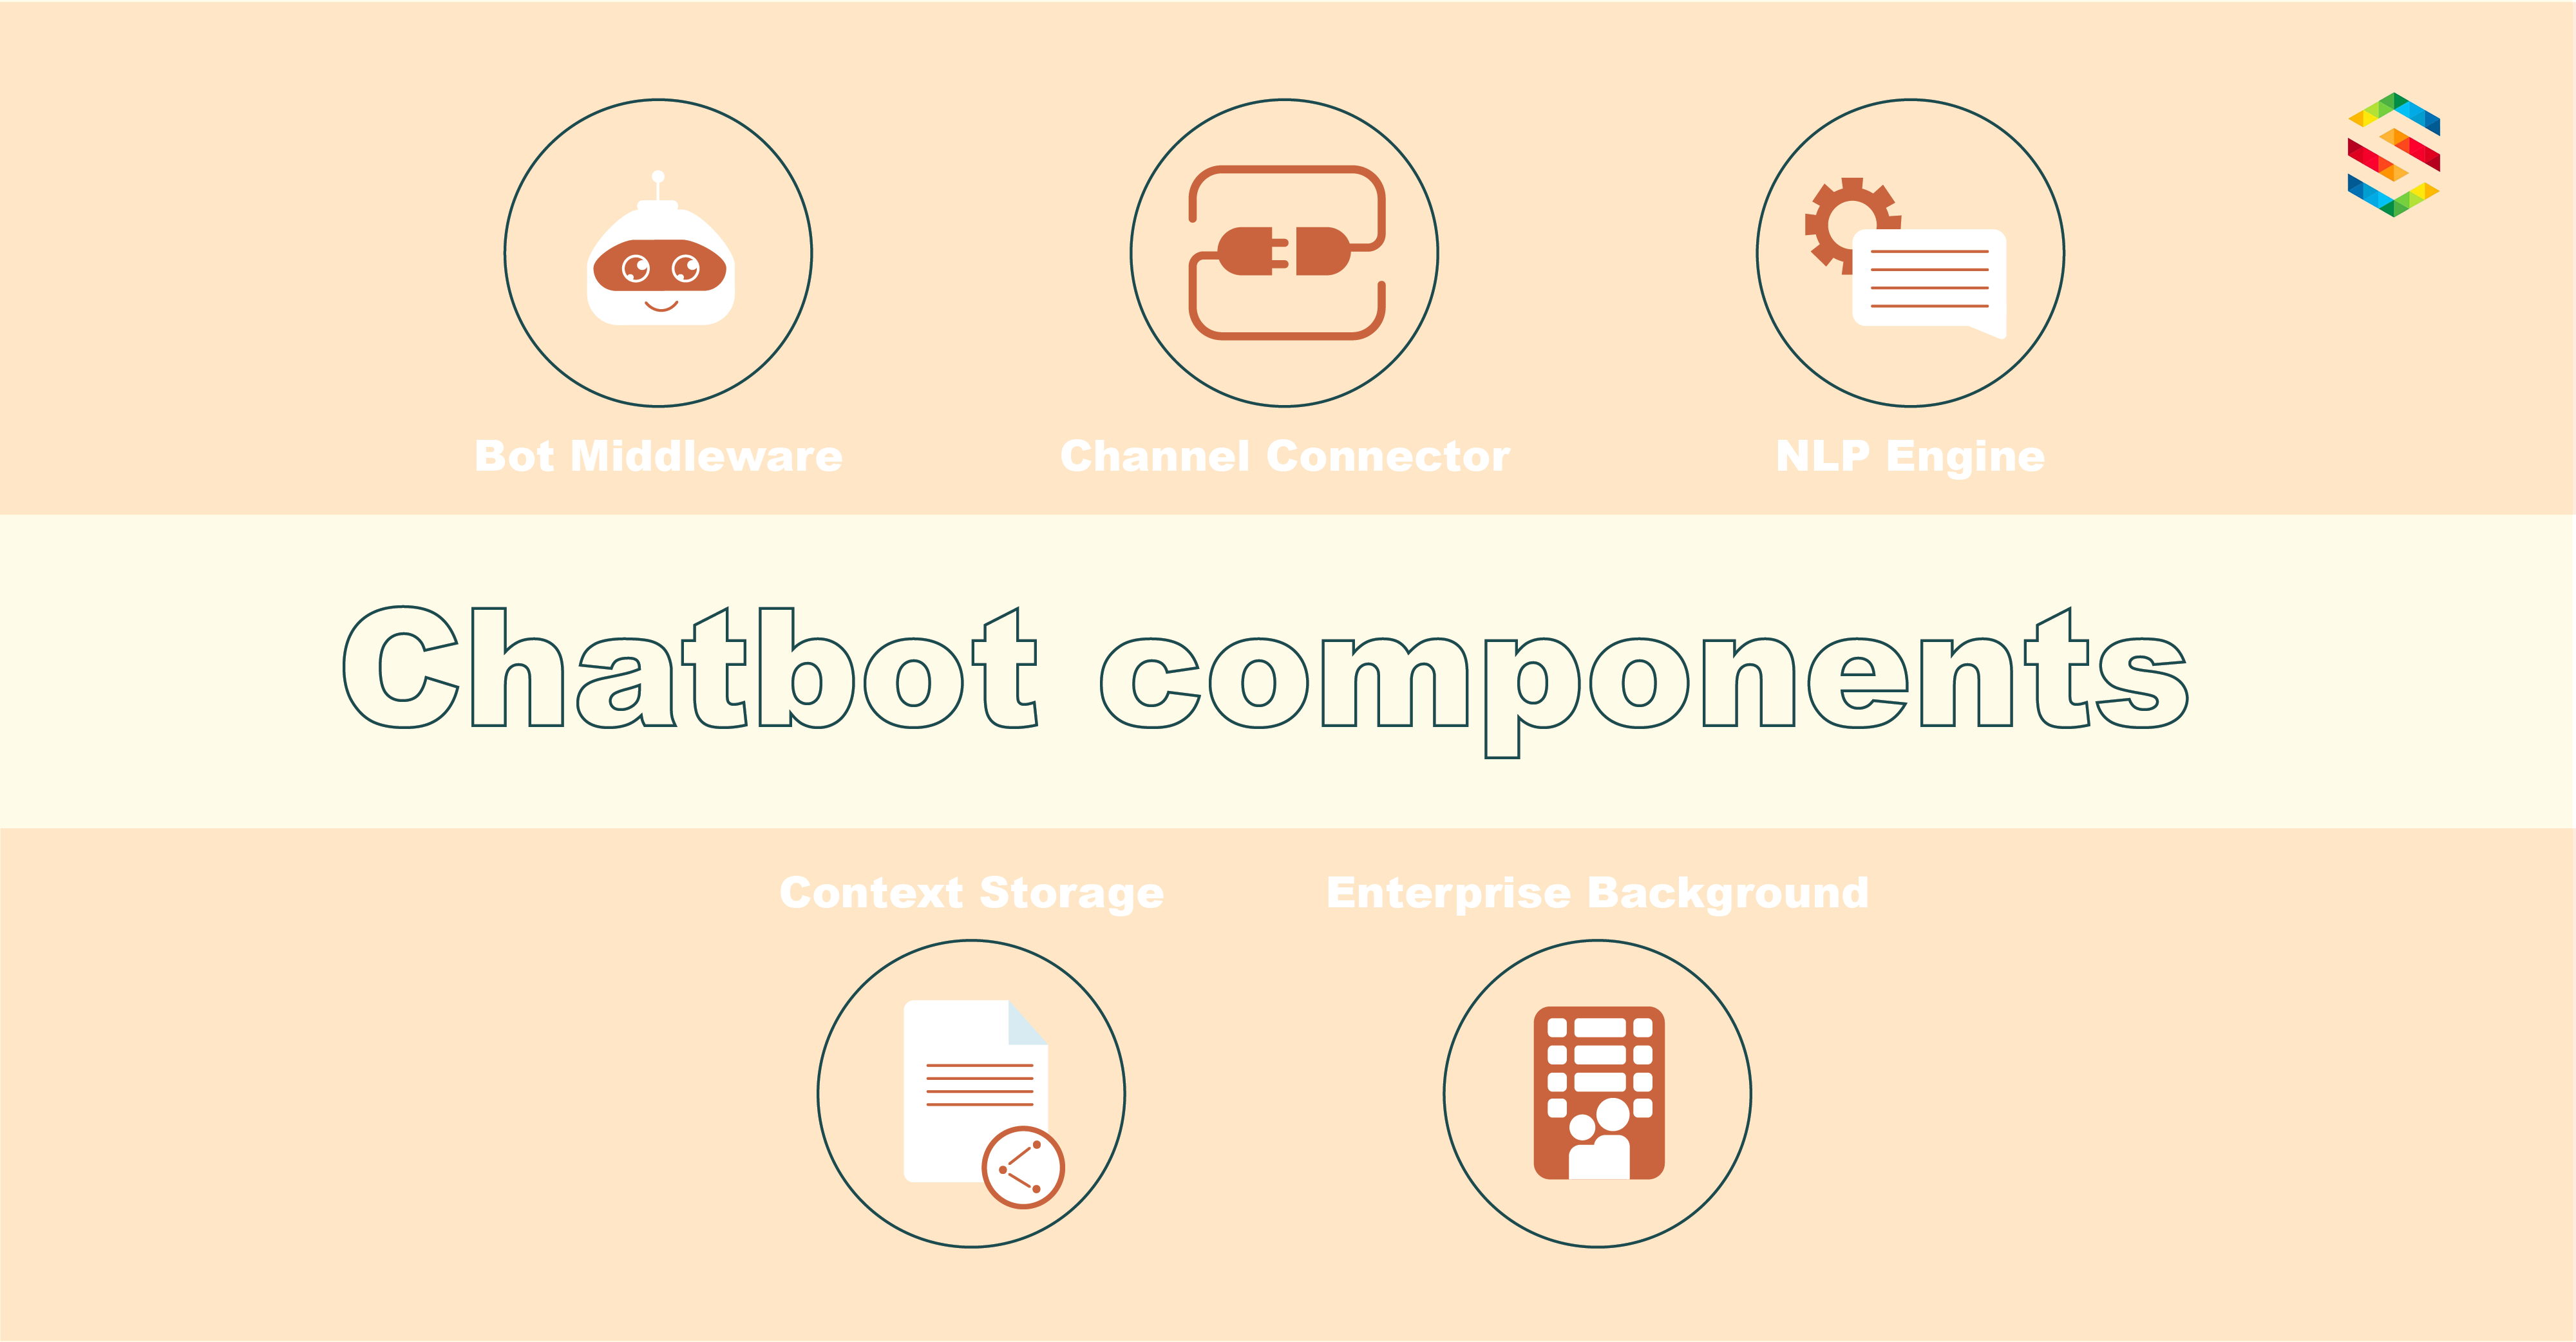 Chatbot components